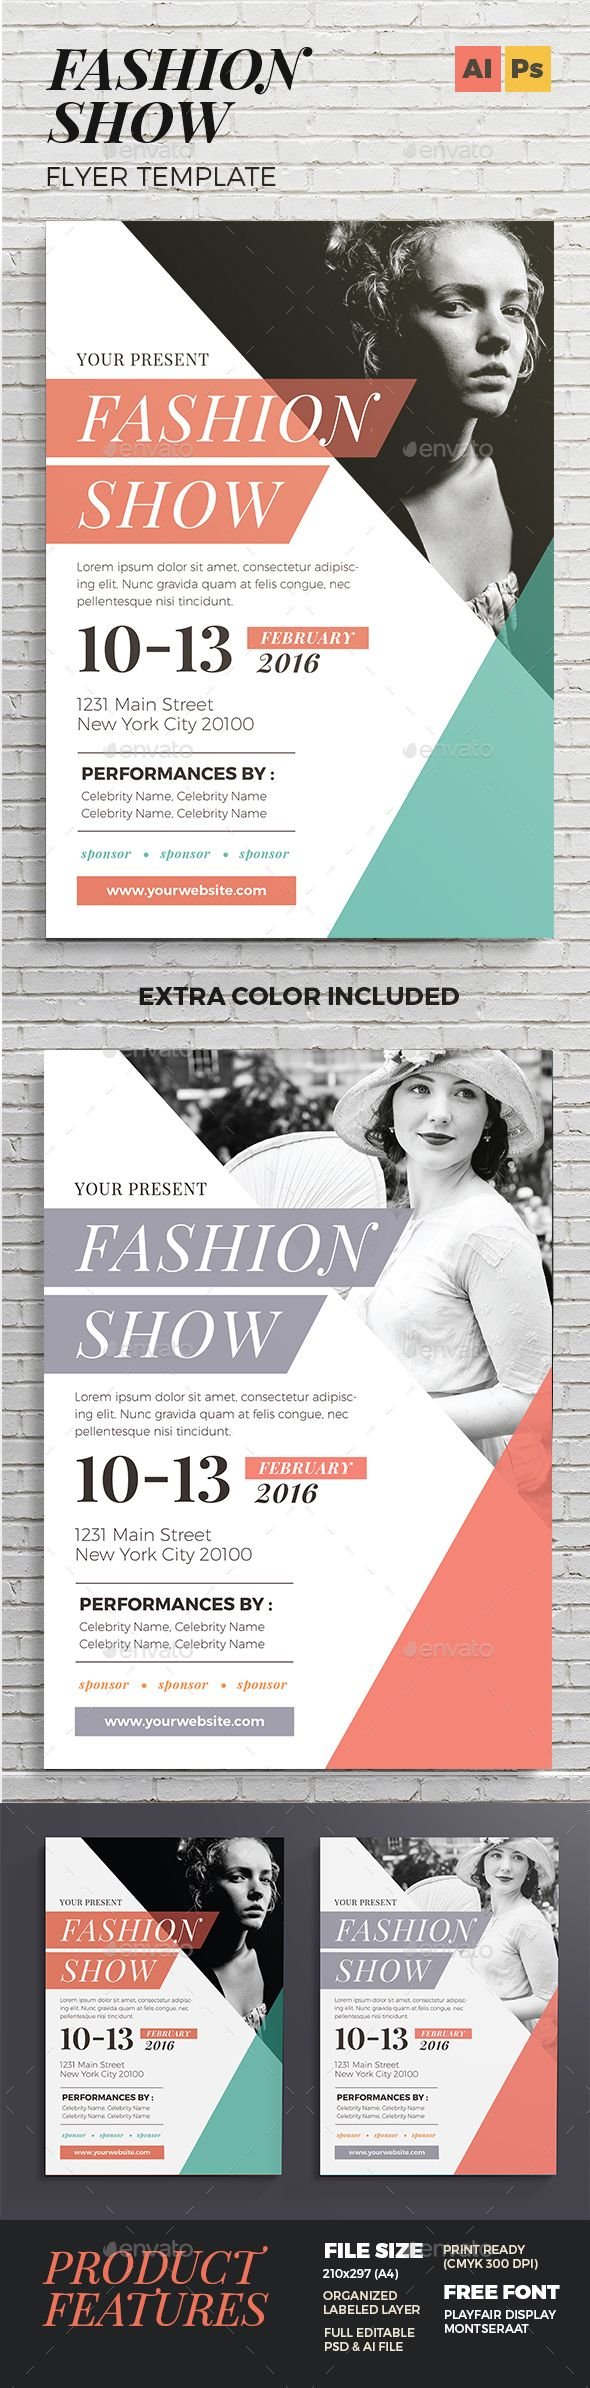 Poster design pinterest - Fashion Show Flyer